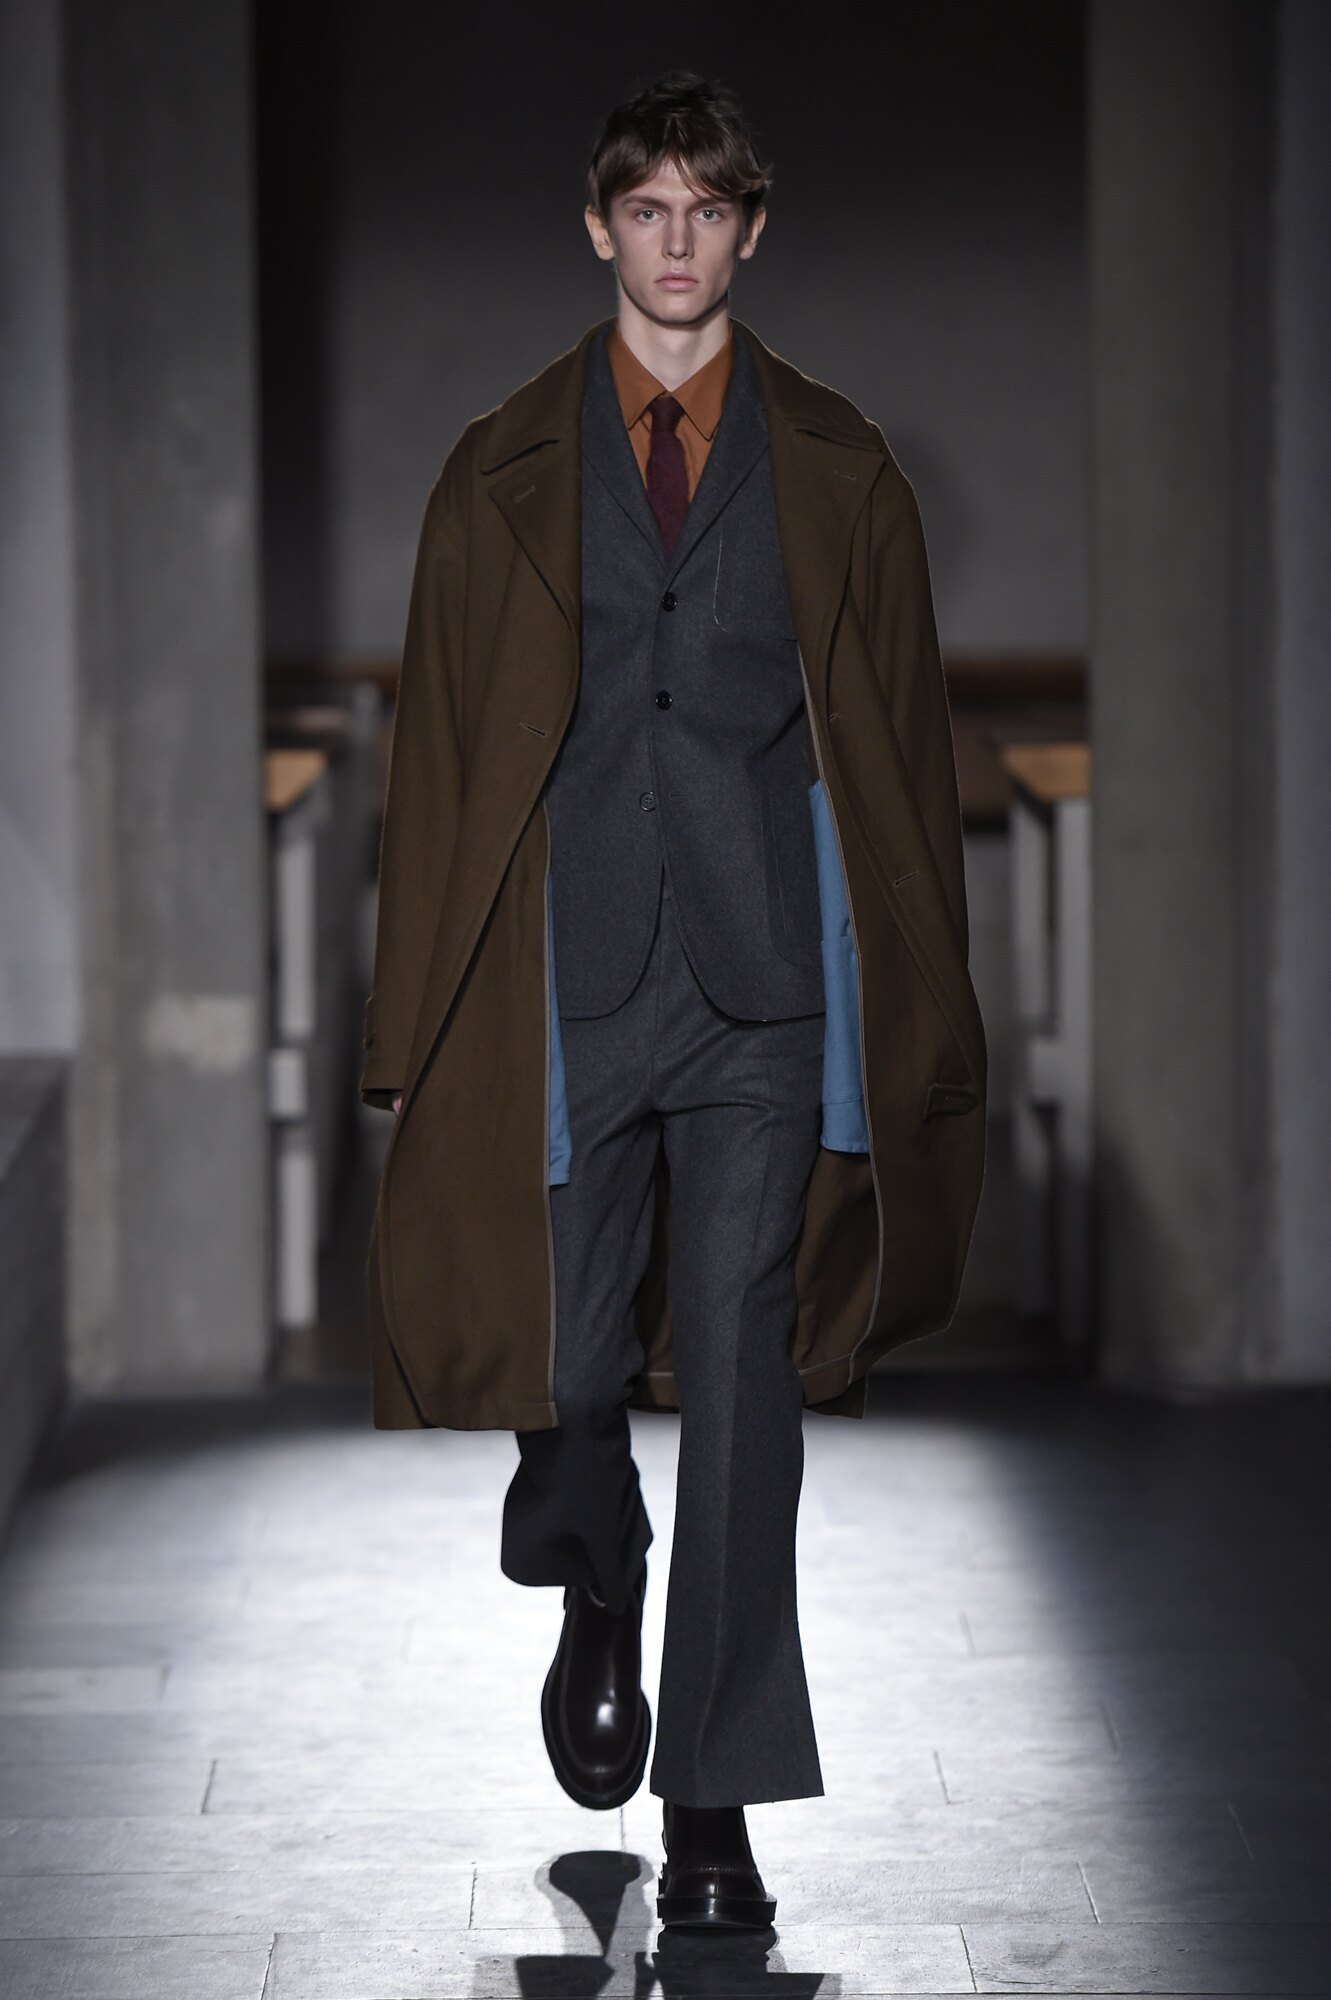 Runway Marni Fall Winter 2015 Men's Collection Pitti Immagine Uomo